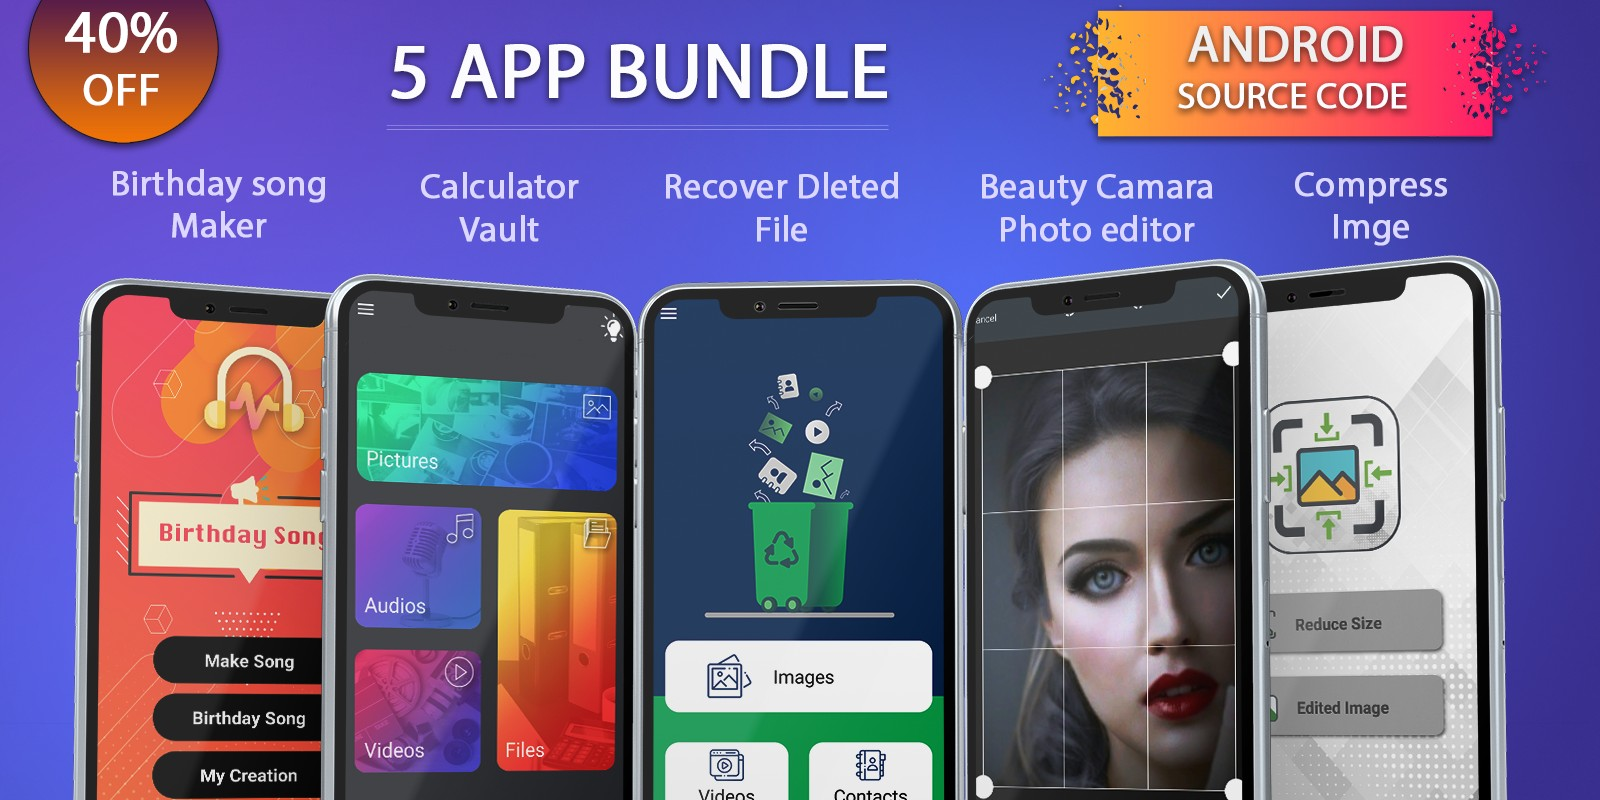 5 Android App Source Code Bundle